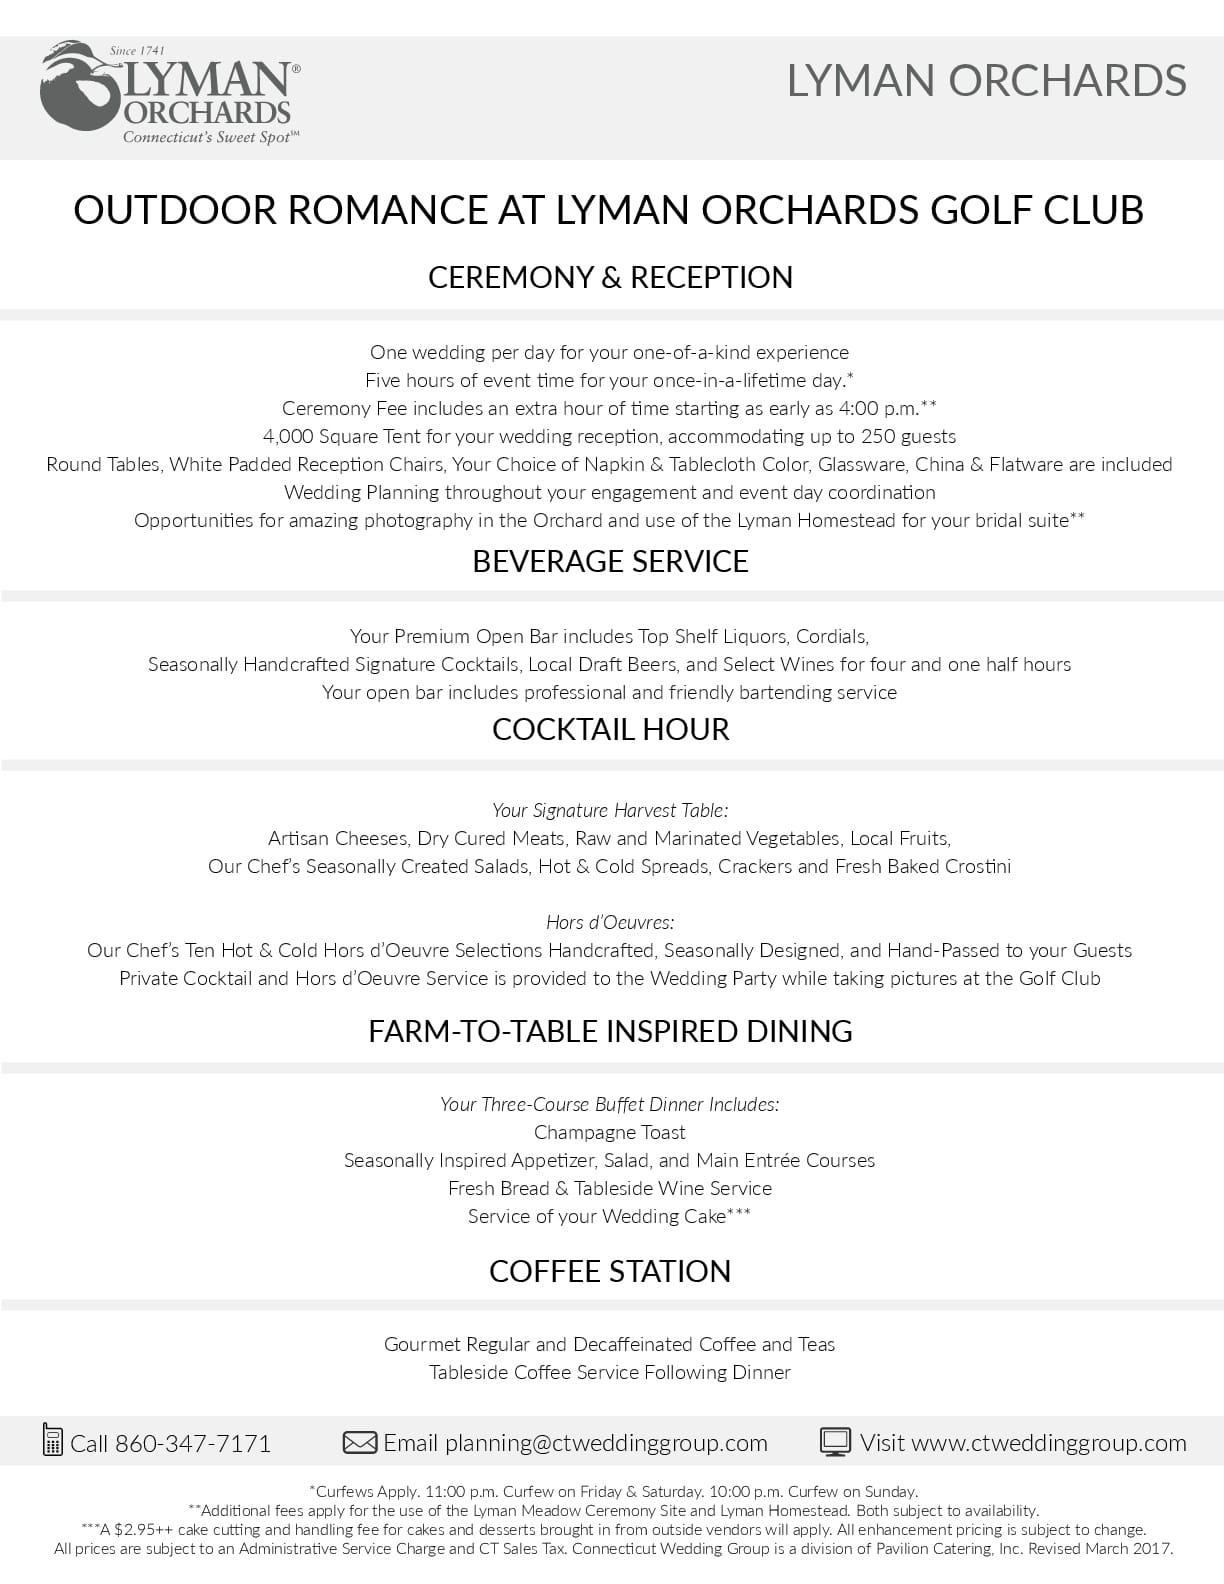 117_15312_Lyman-Orchards-Golf-Club-Signature-Wedding-Package_2017-002-min